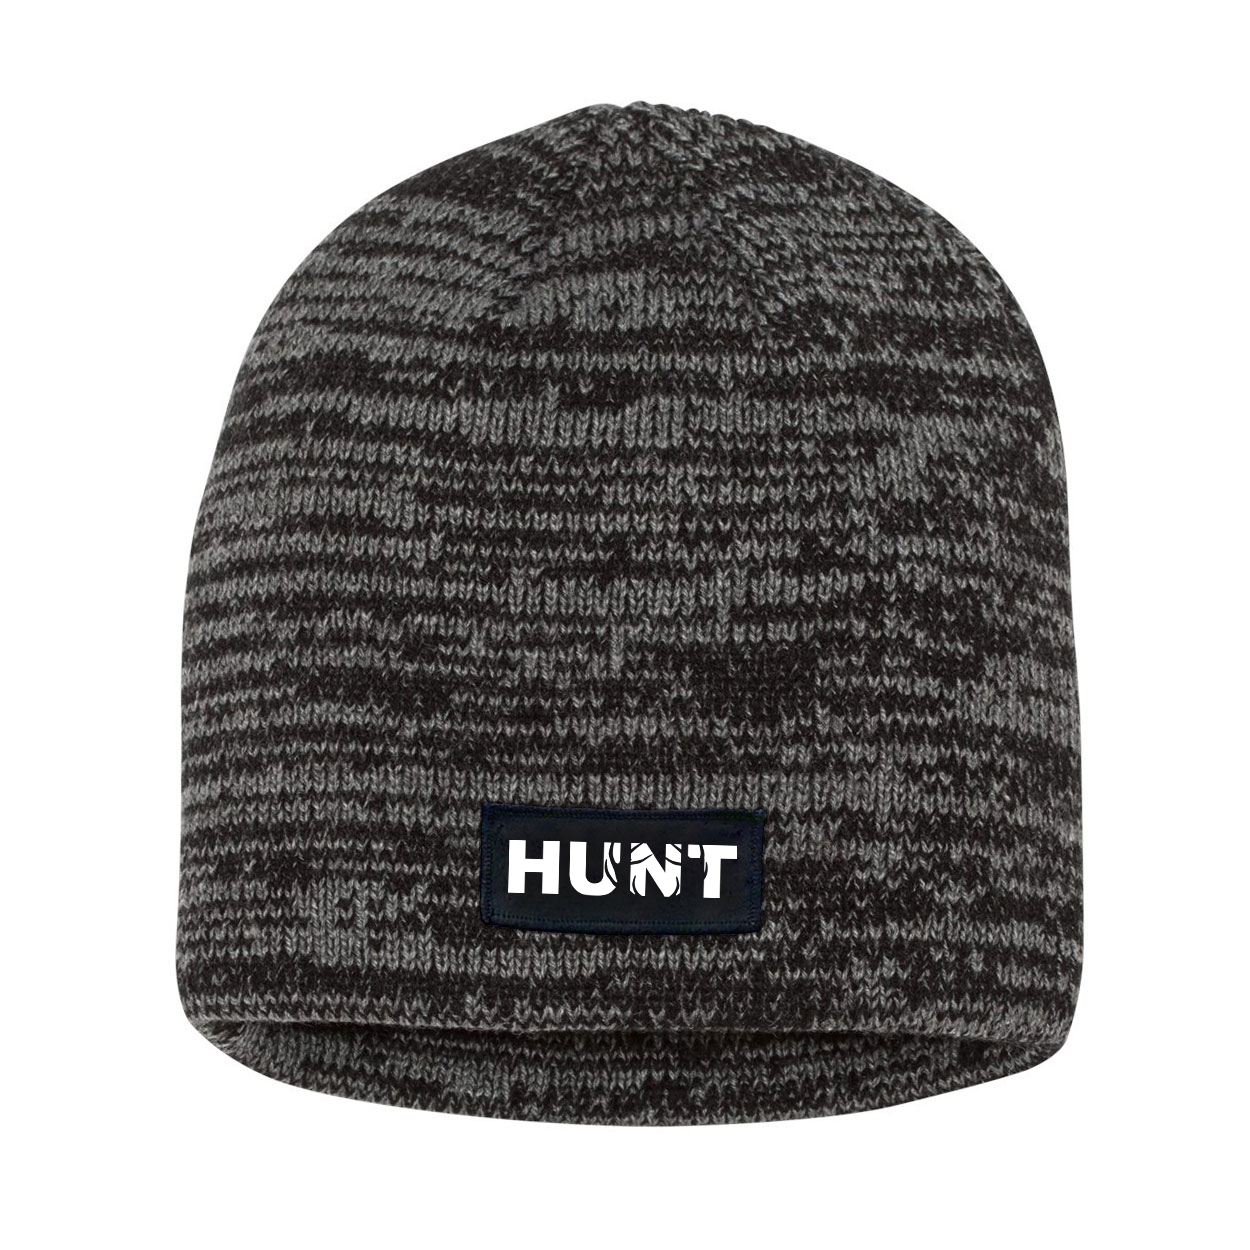 Hunt Rack Logo Night Out Woven Patch Skully Marled Knit Beanie Black/Gray (White Logo)